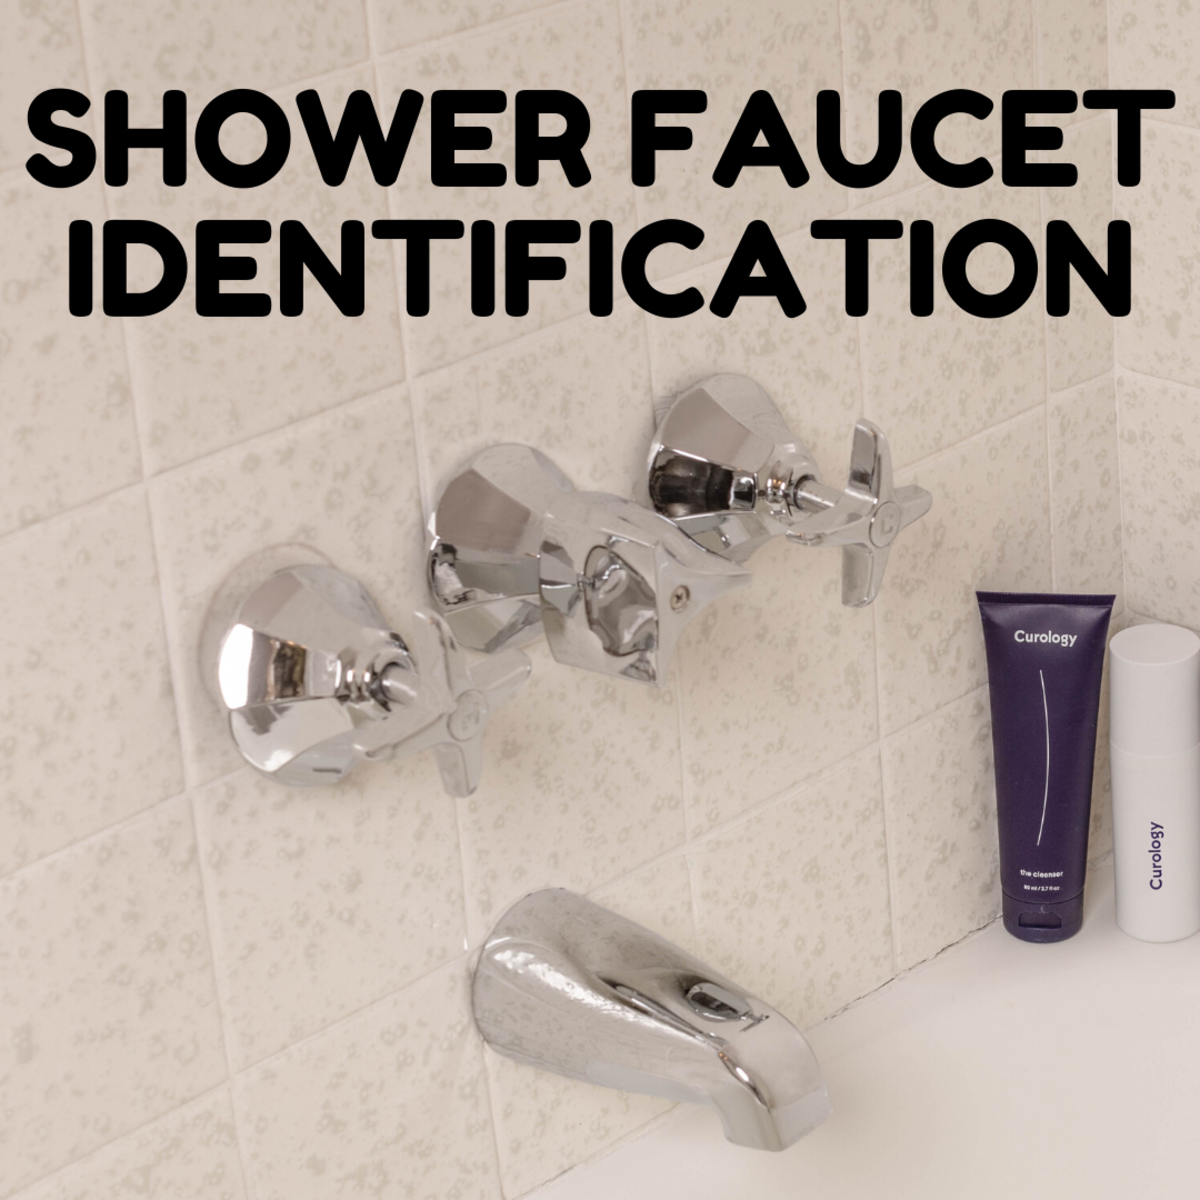 How to Identify Shower Faucet Cartridge Type and Brand